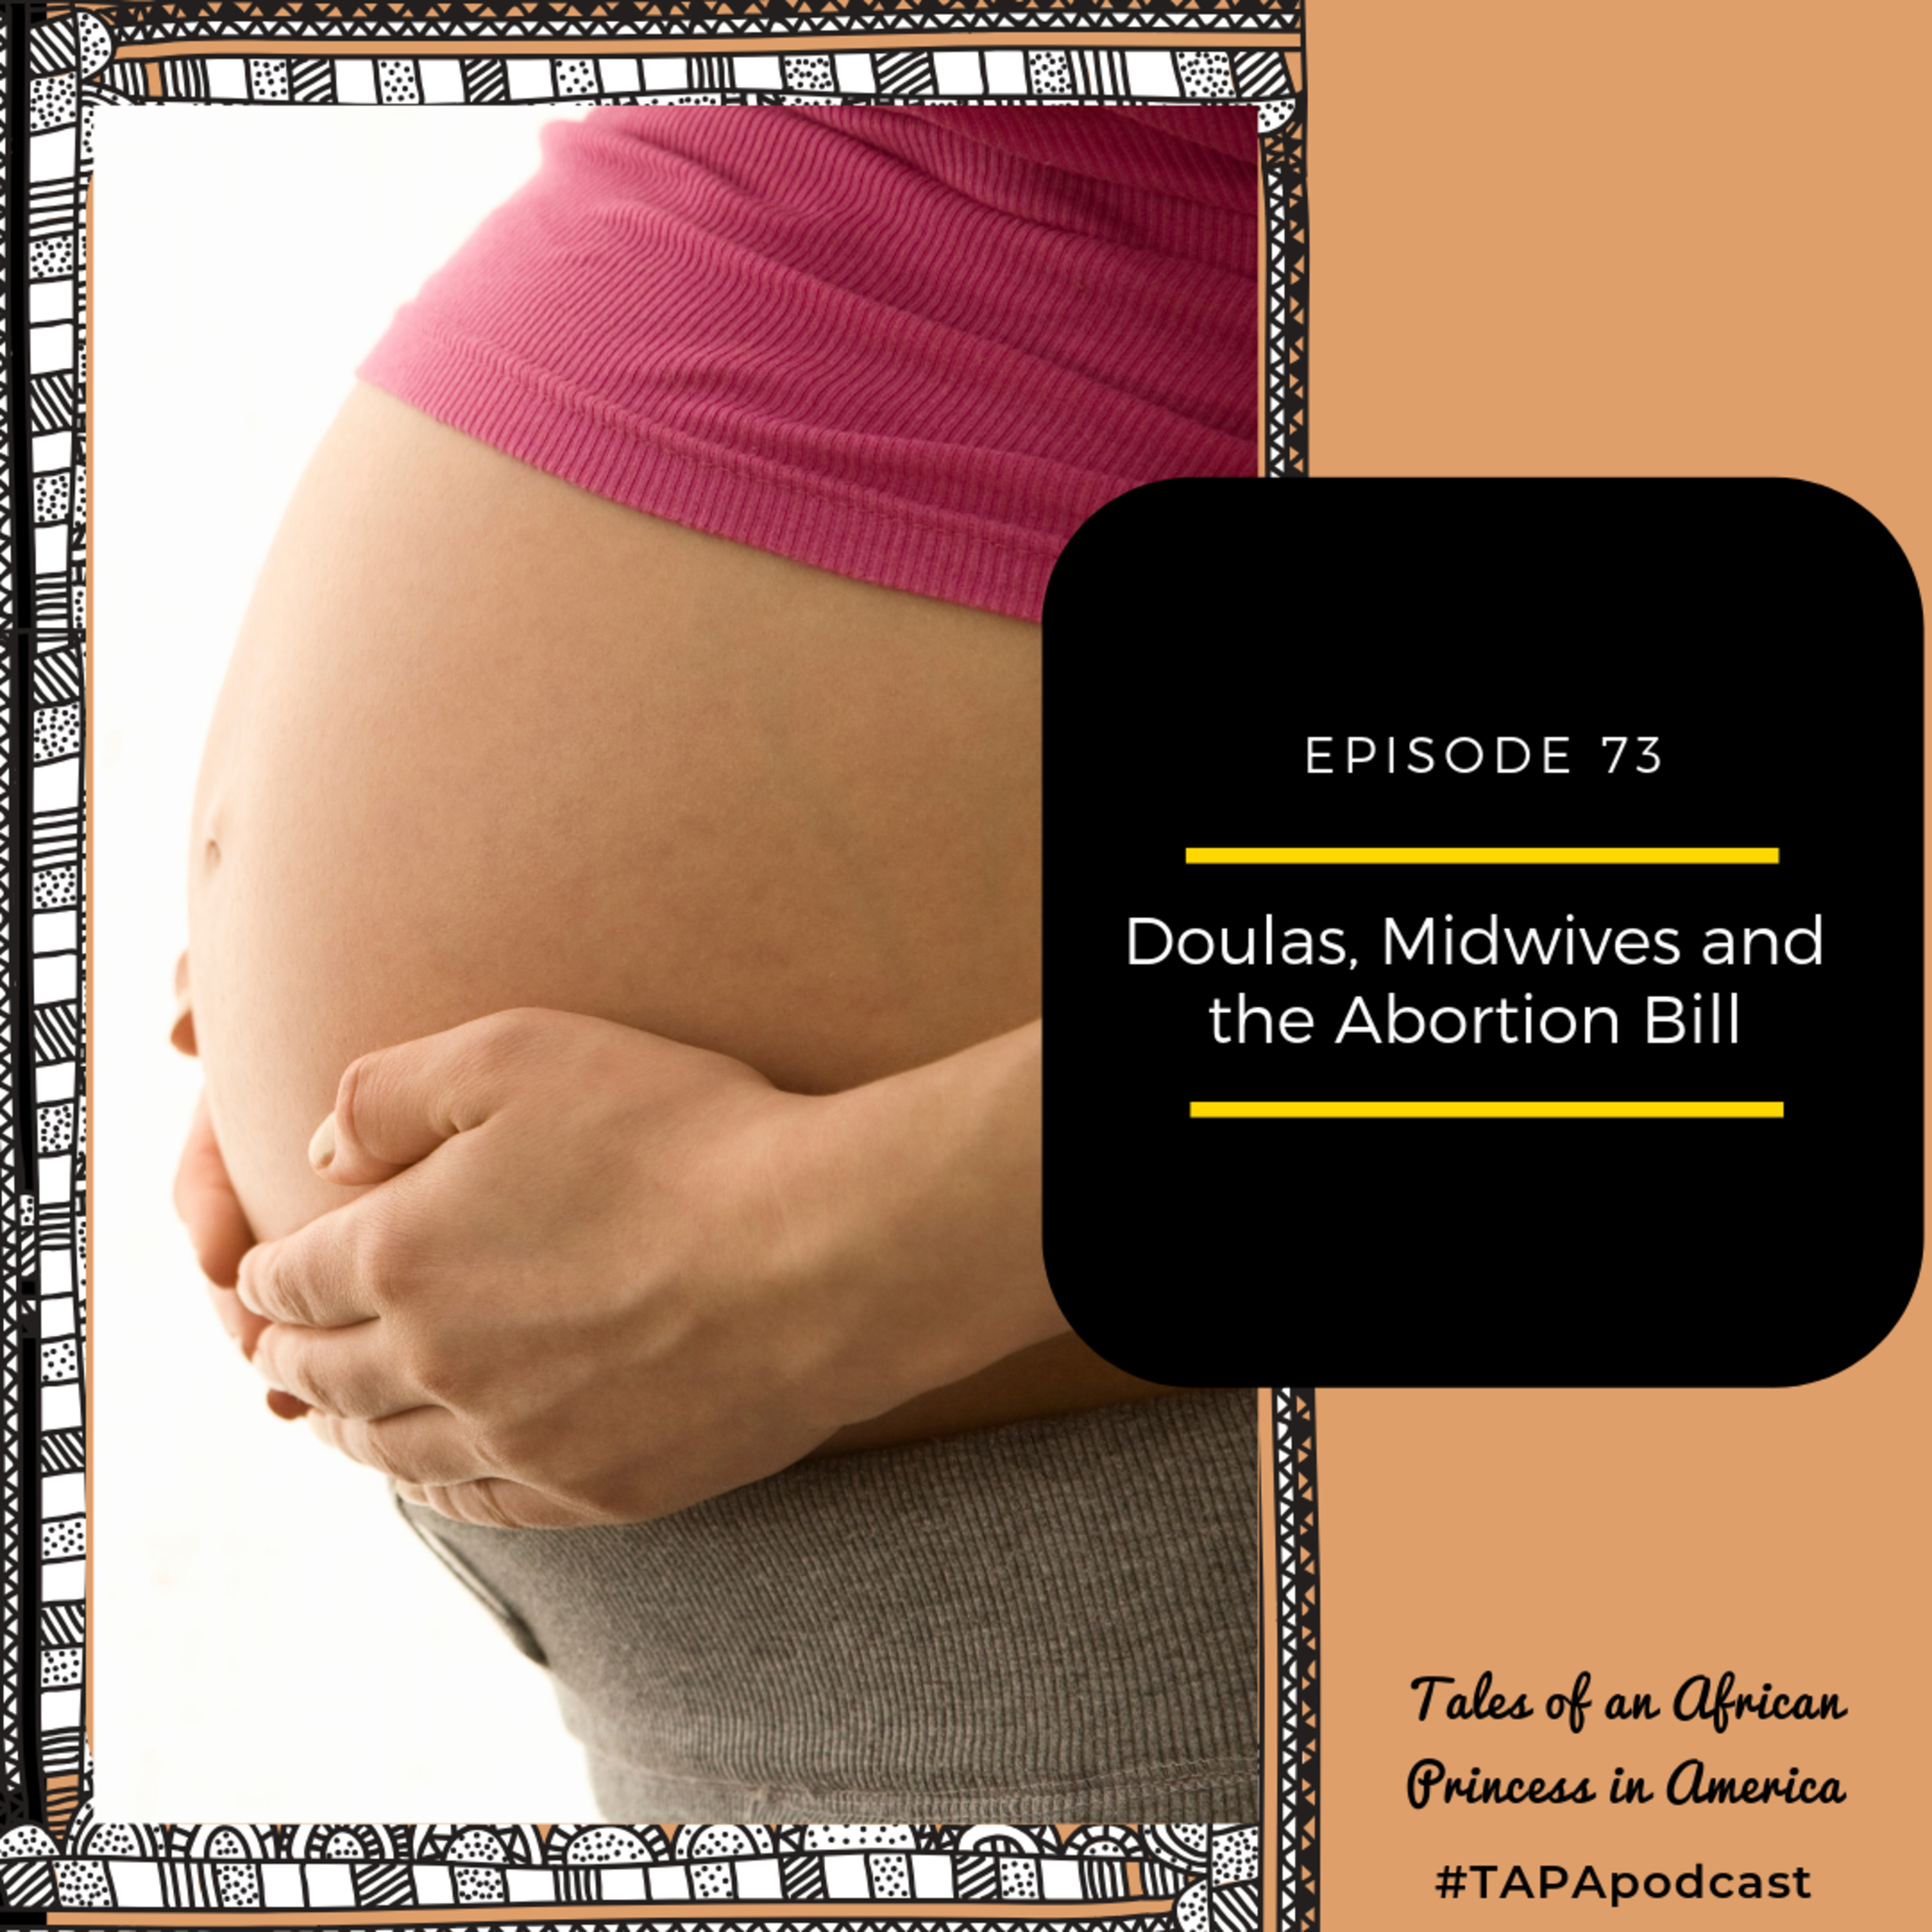 Doulas, Midwives and the Abortion Bill